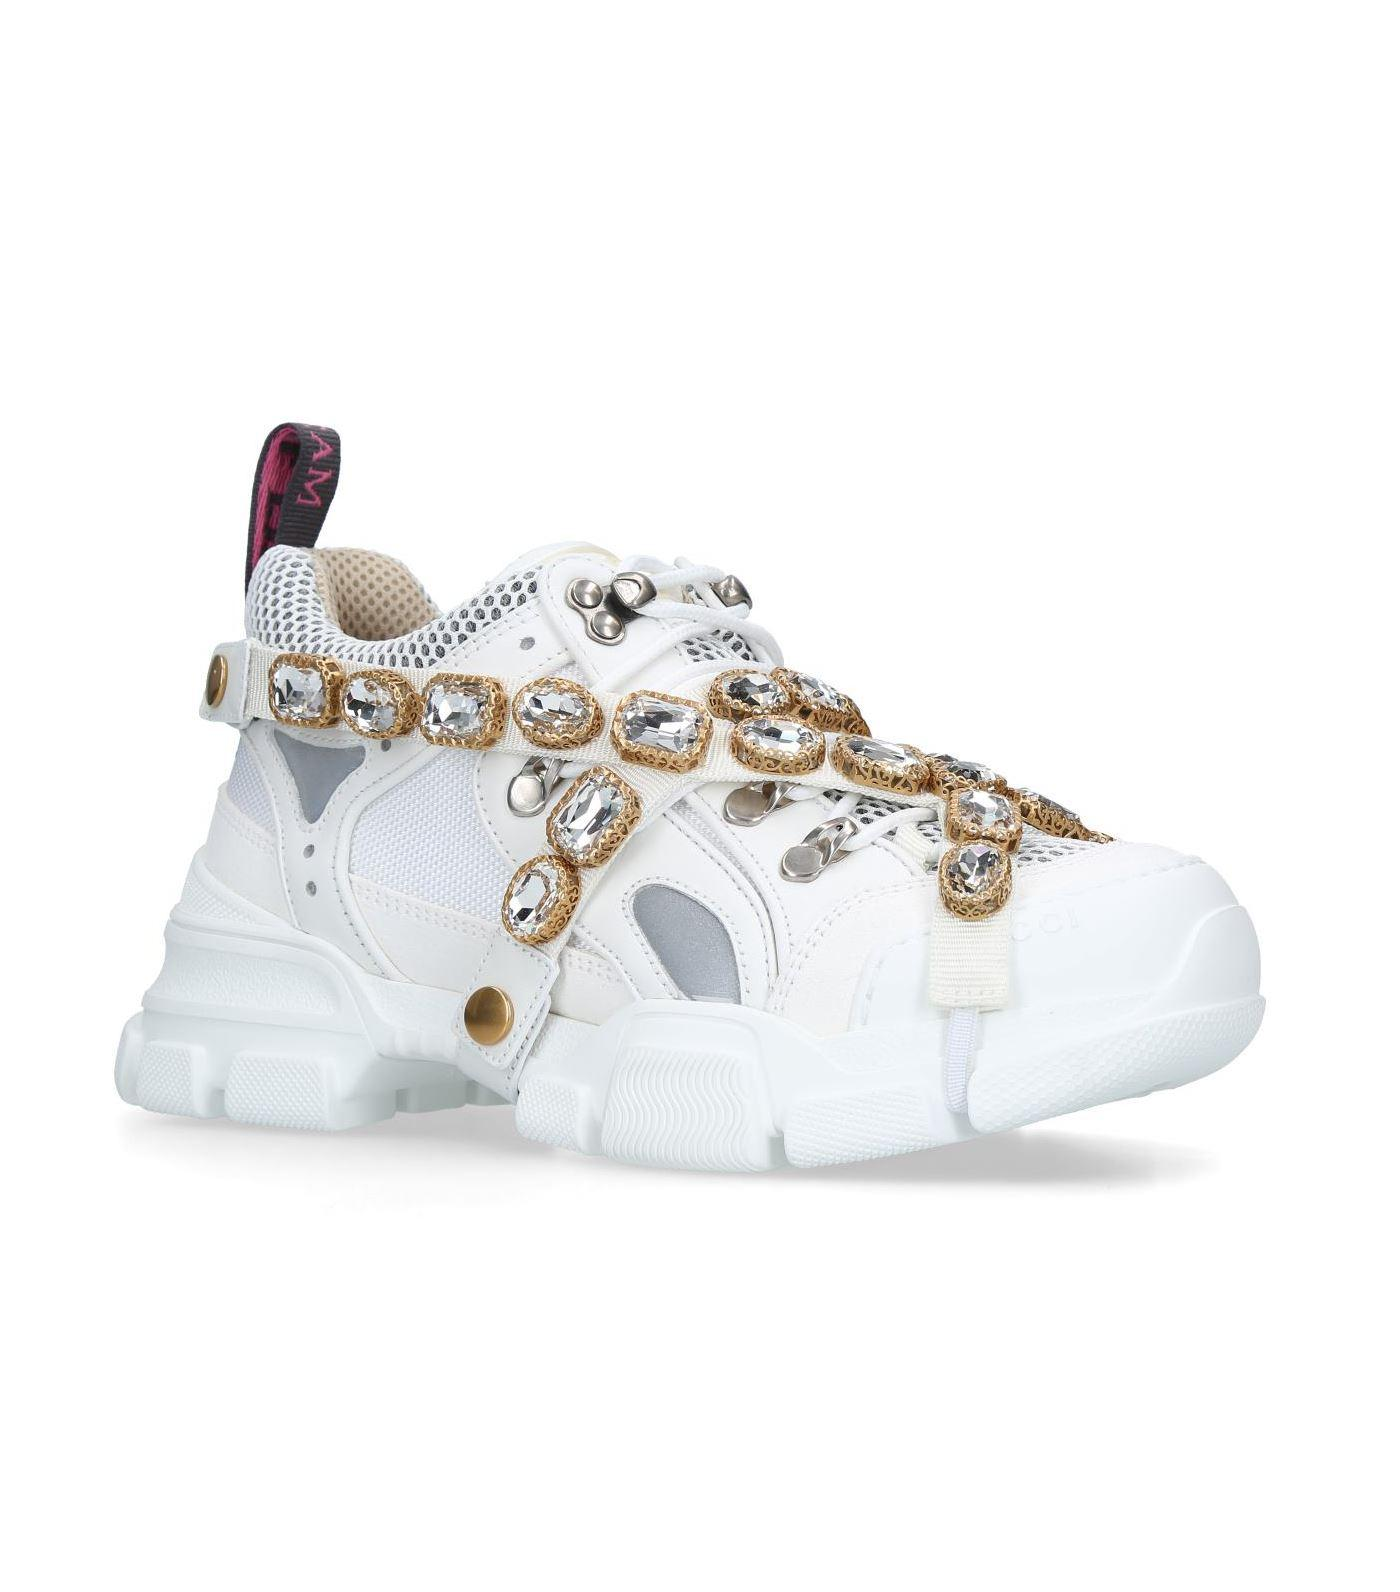 1ff6c6c5af6 Lyst - Gucci Flashtrek Sneakers in White